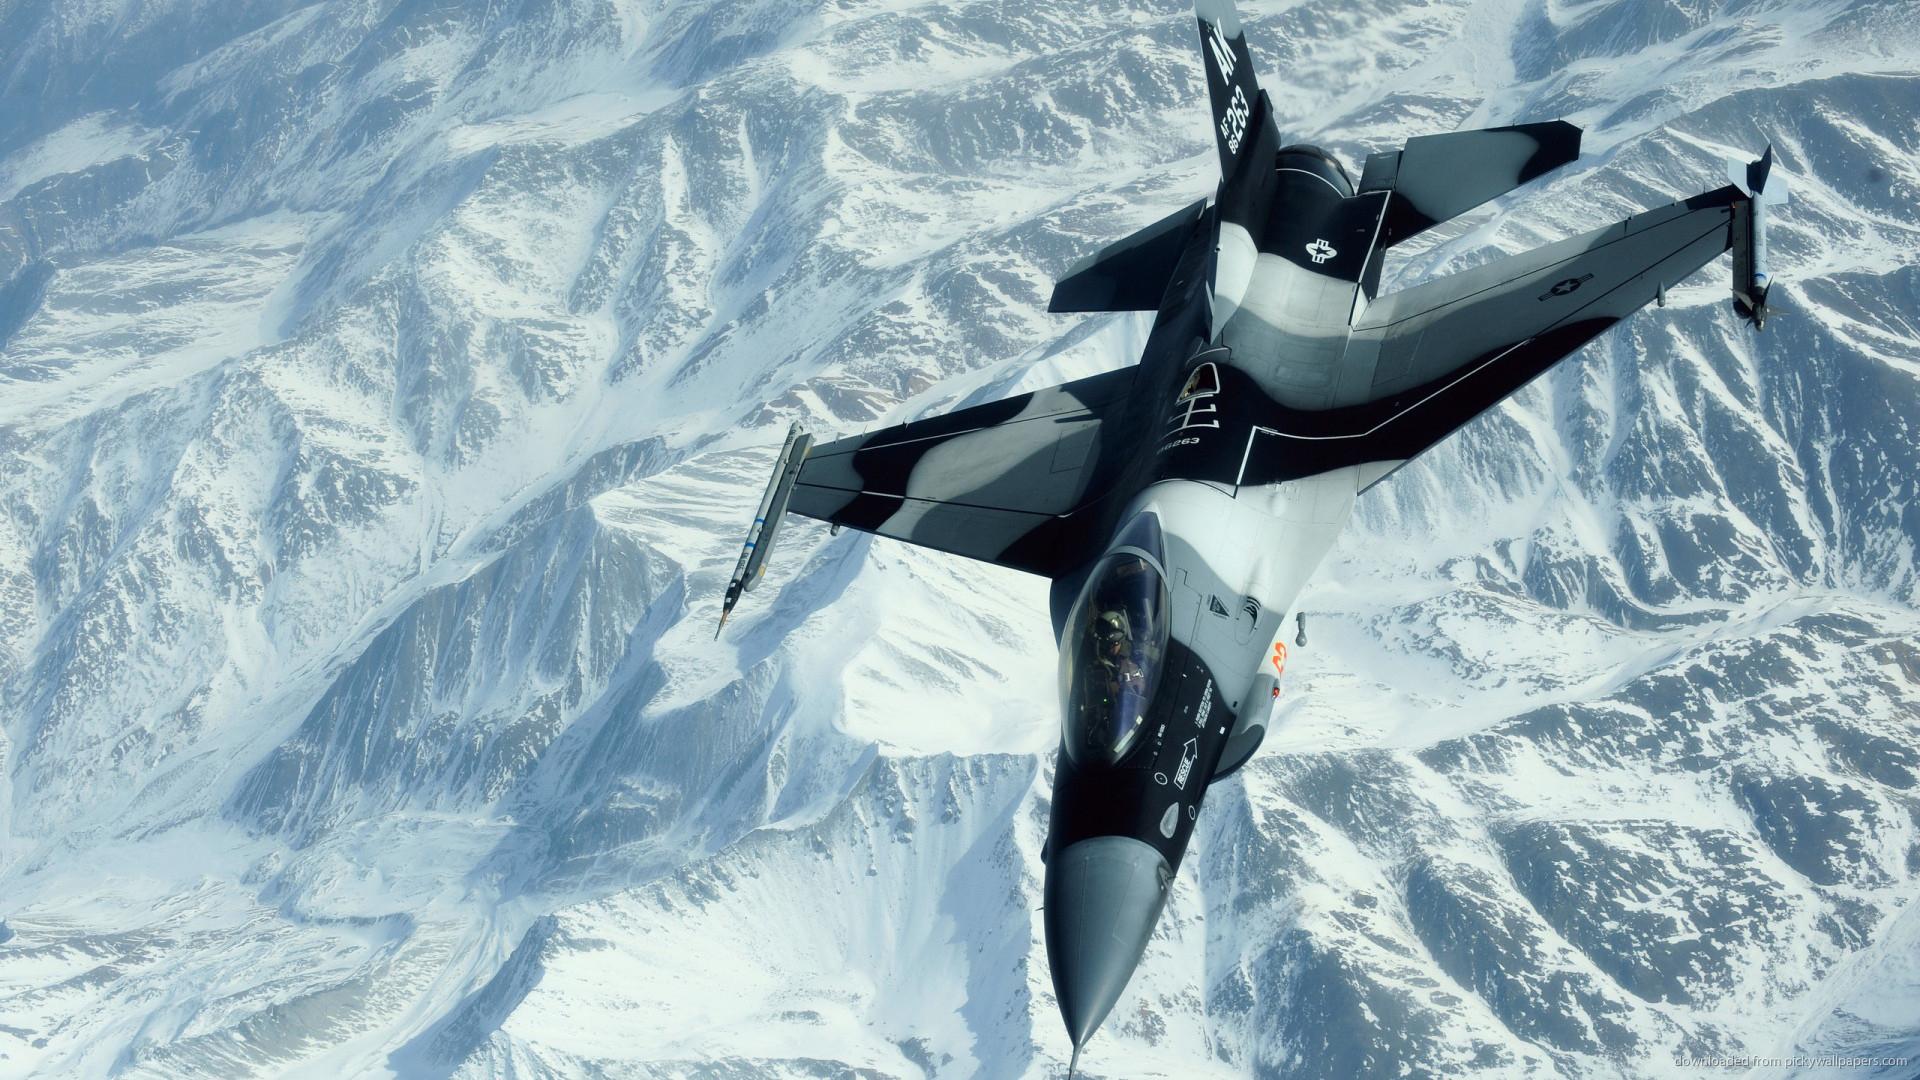 F16 over snowy mountains picture